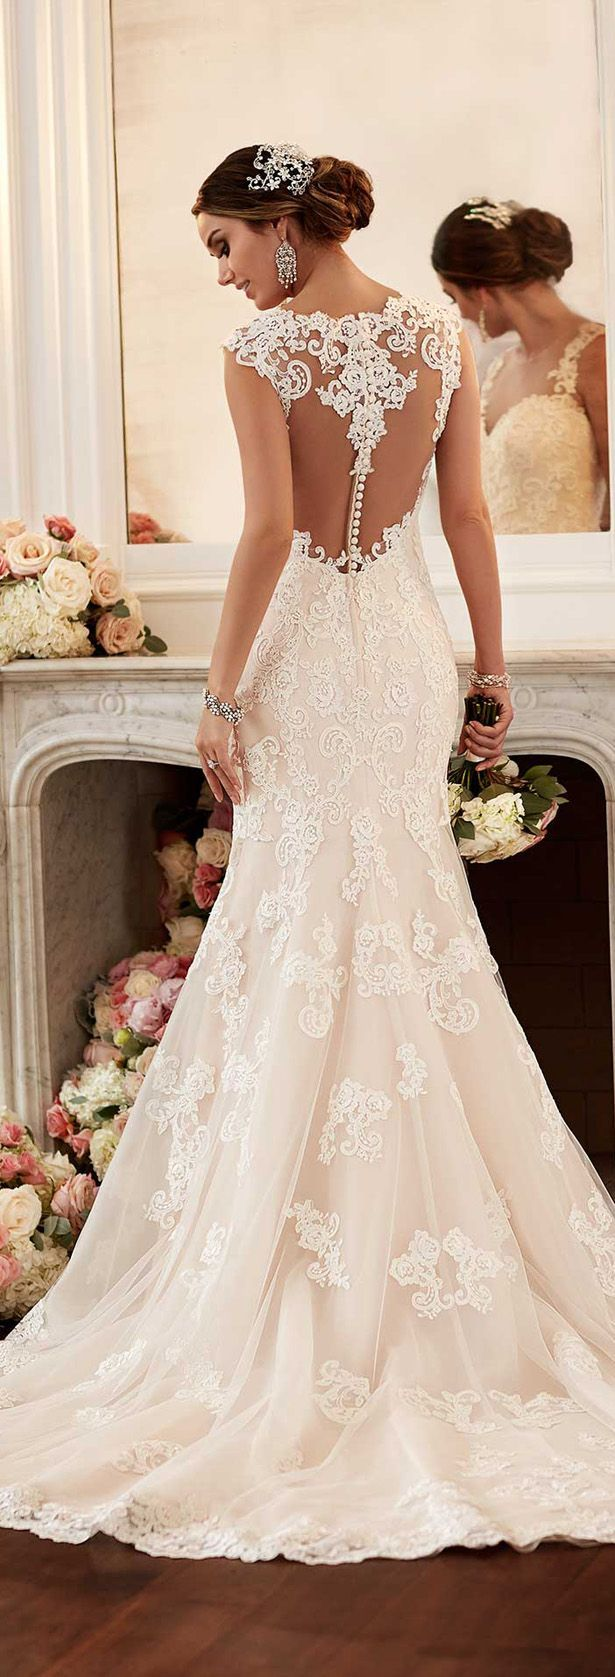 wedding dress and fashions wedding dress with feathers Stella York Spring Bridal Collection